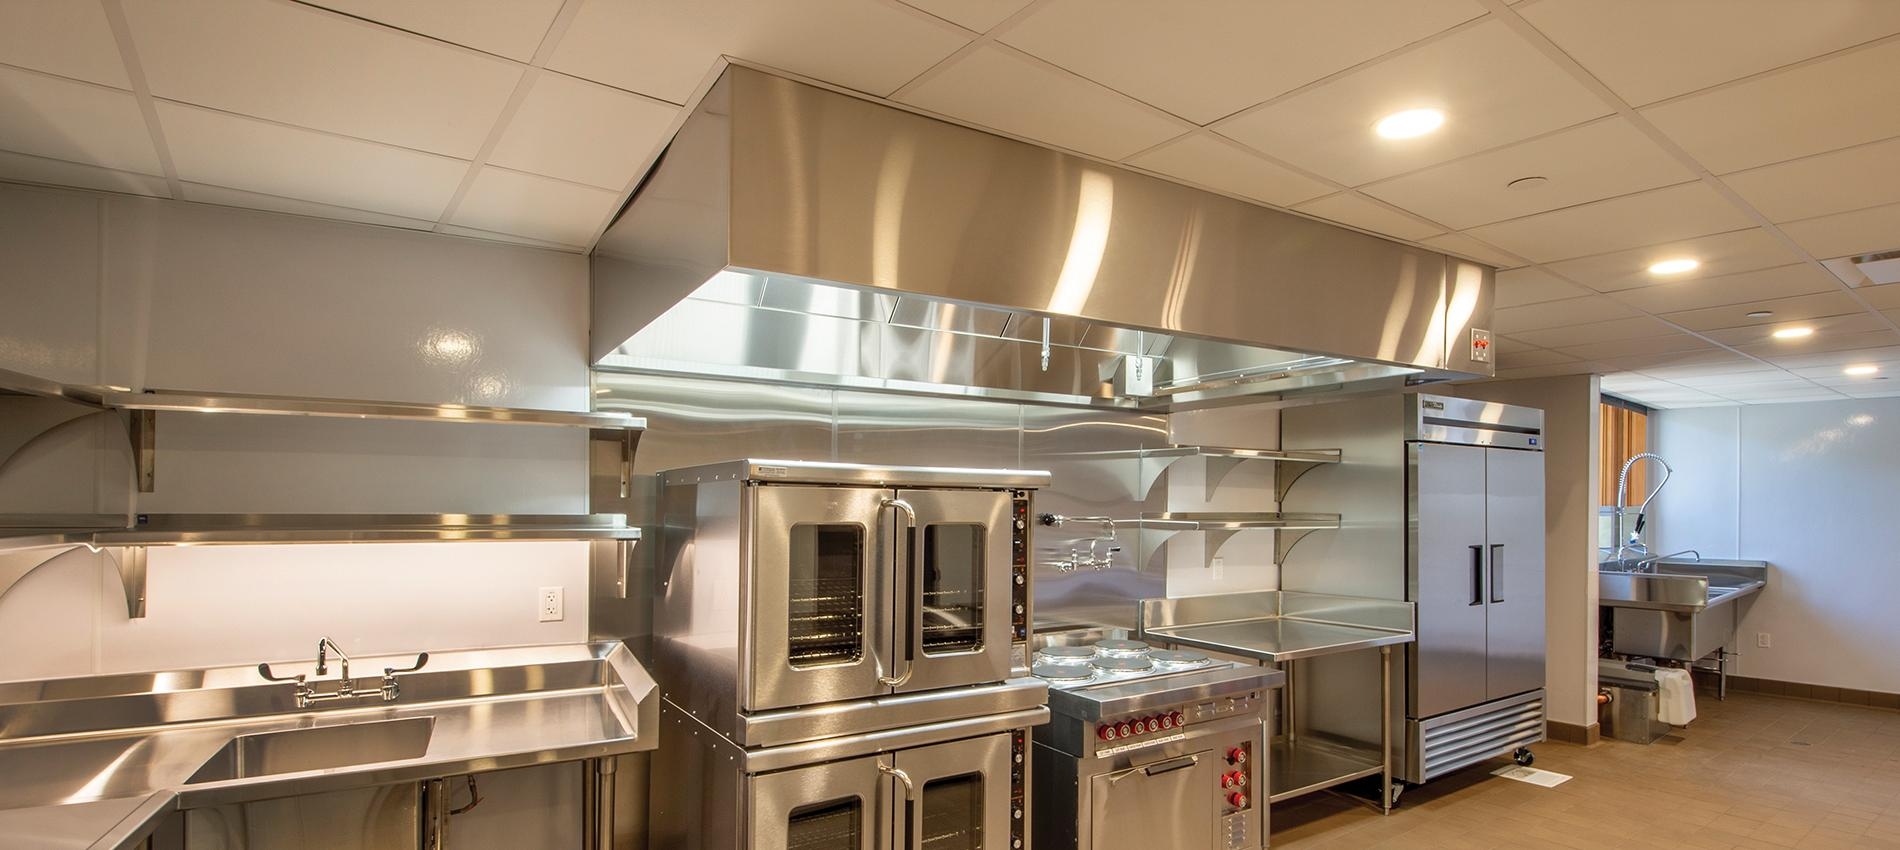 0819 Code FAQs commercial kitchen